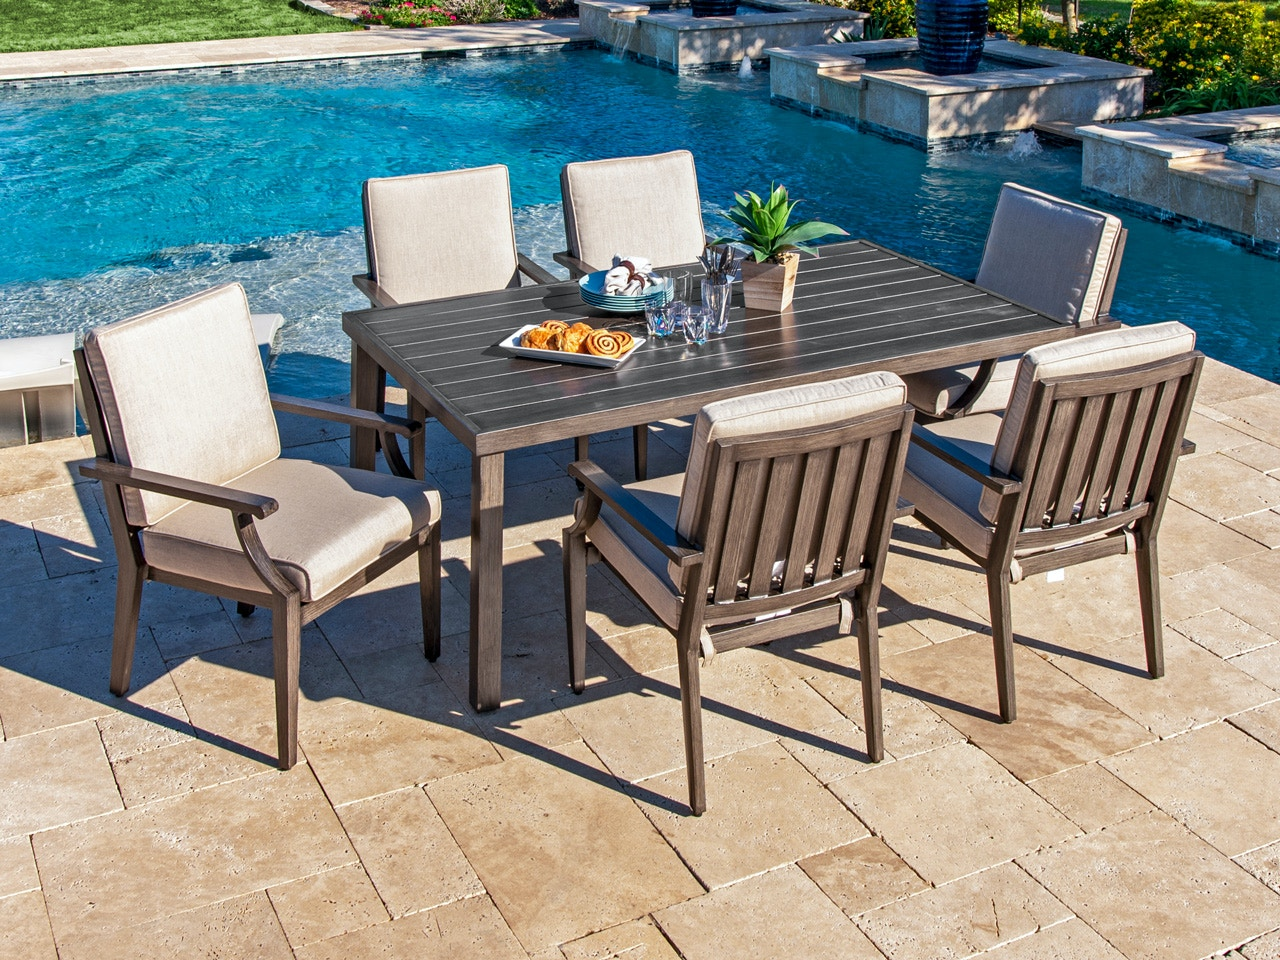 Living Room Monaco Weathered Teak Aluminum And Cast Ash Cushion 7 Pc Dining Set With 72 X 42 In